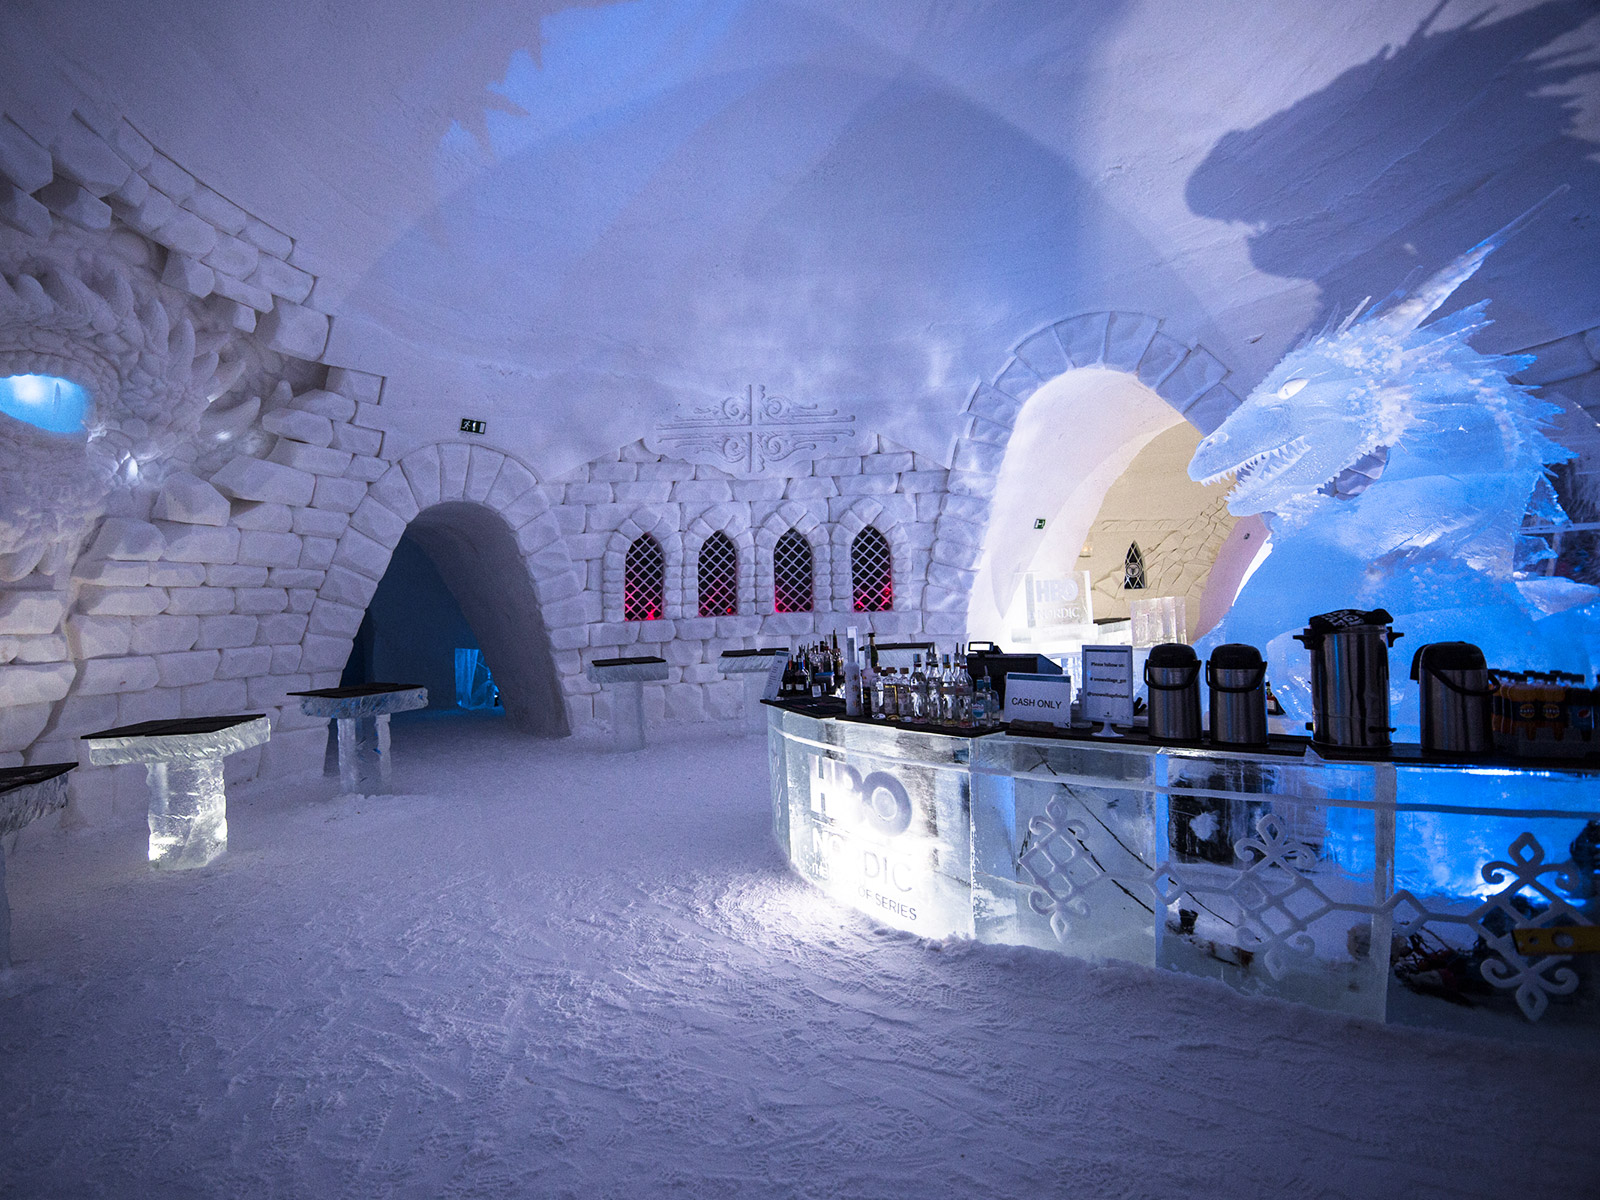 dragon bar of ice in hotel game of thrones themed